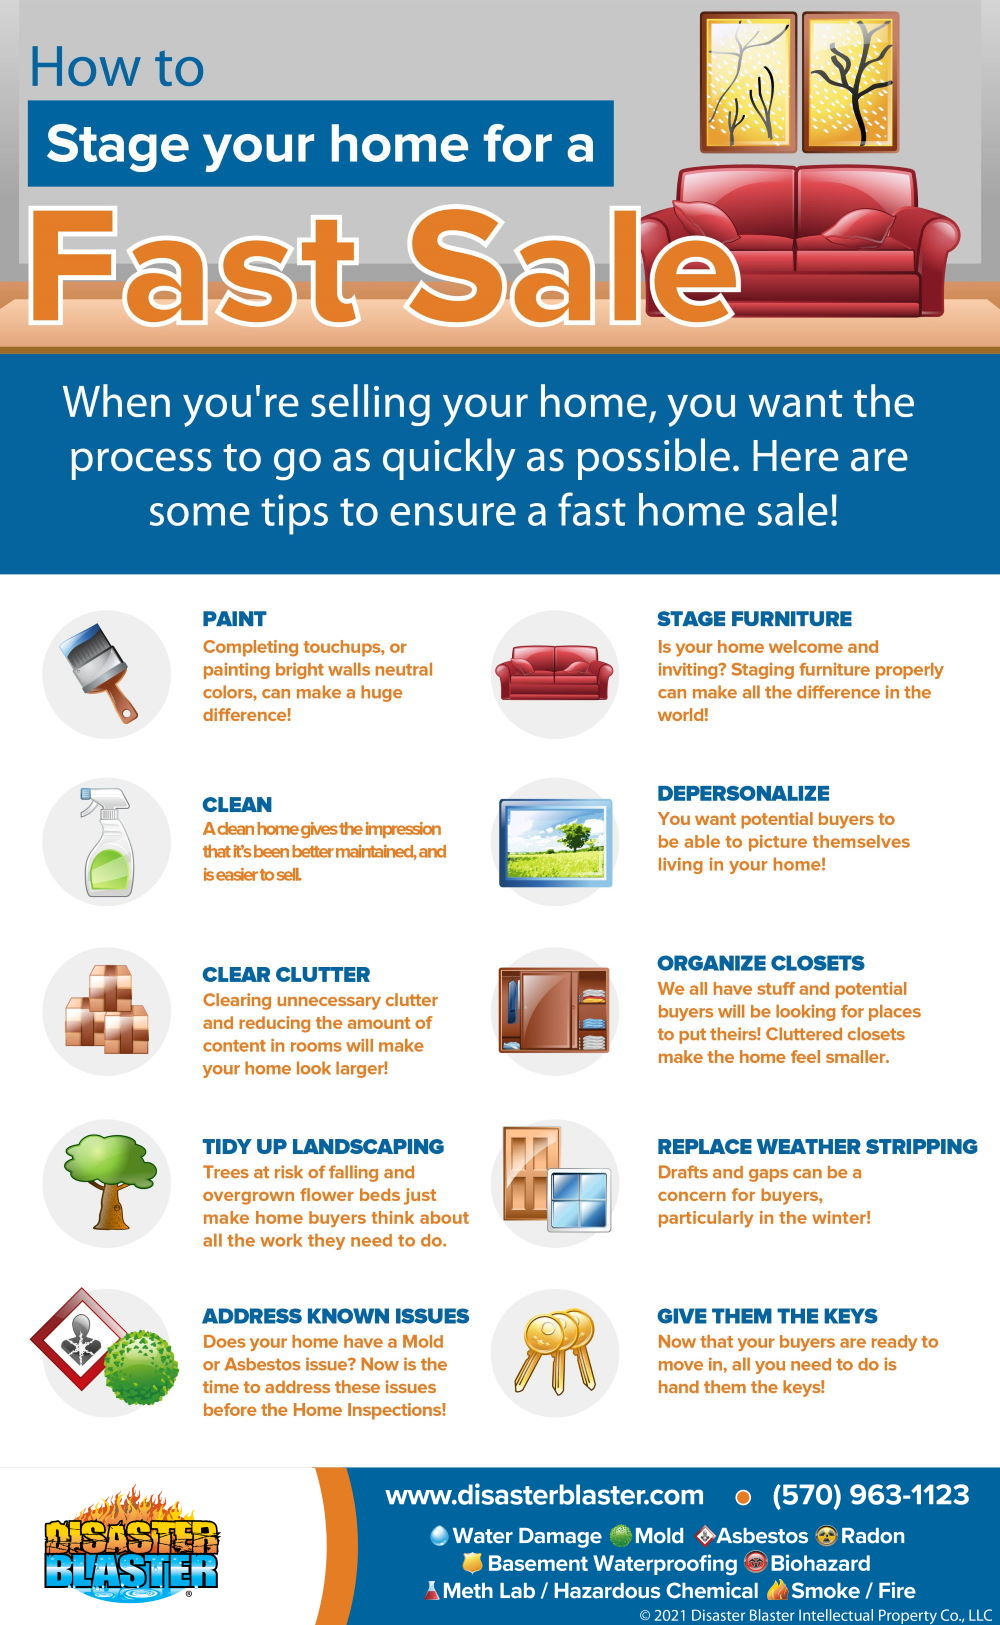 How to stage your home for a fast sale infographic